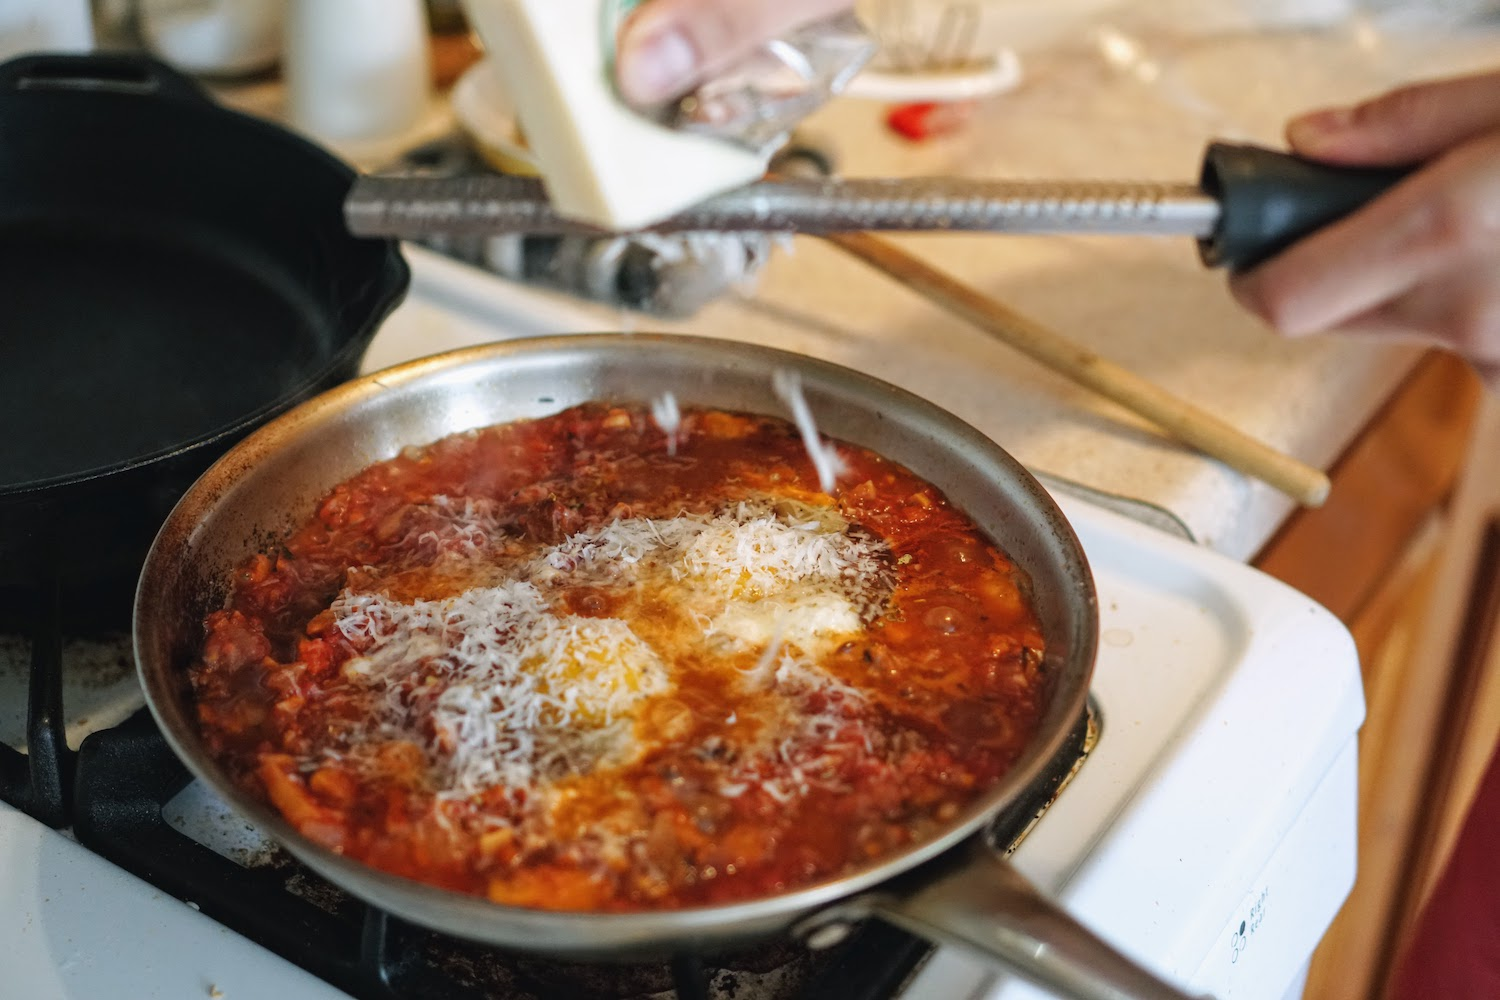 Grating parmesan cheese on top of eggs in tomato sauce